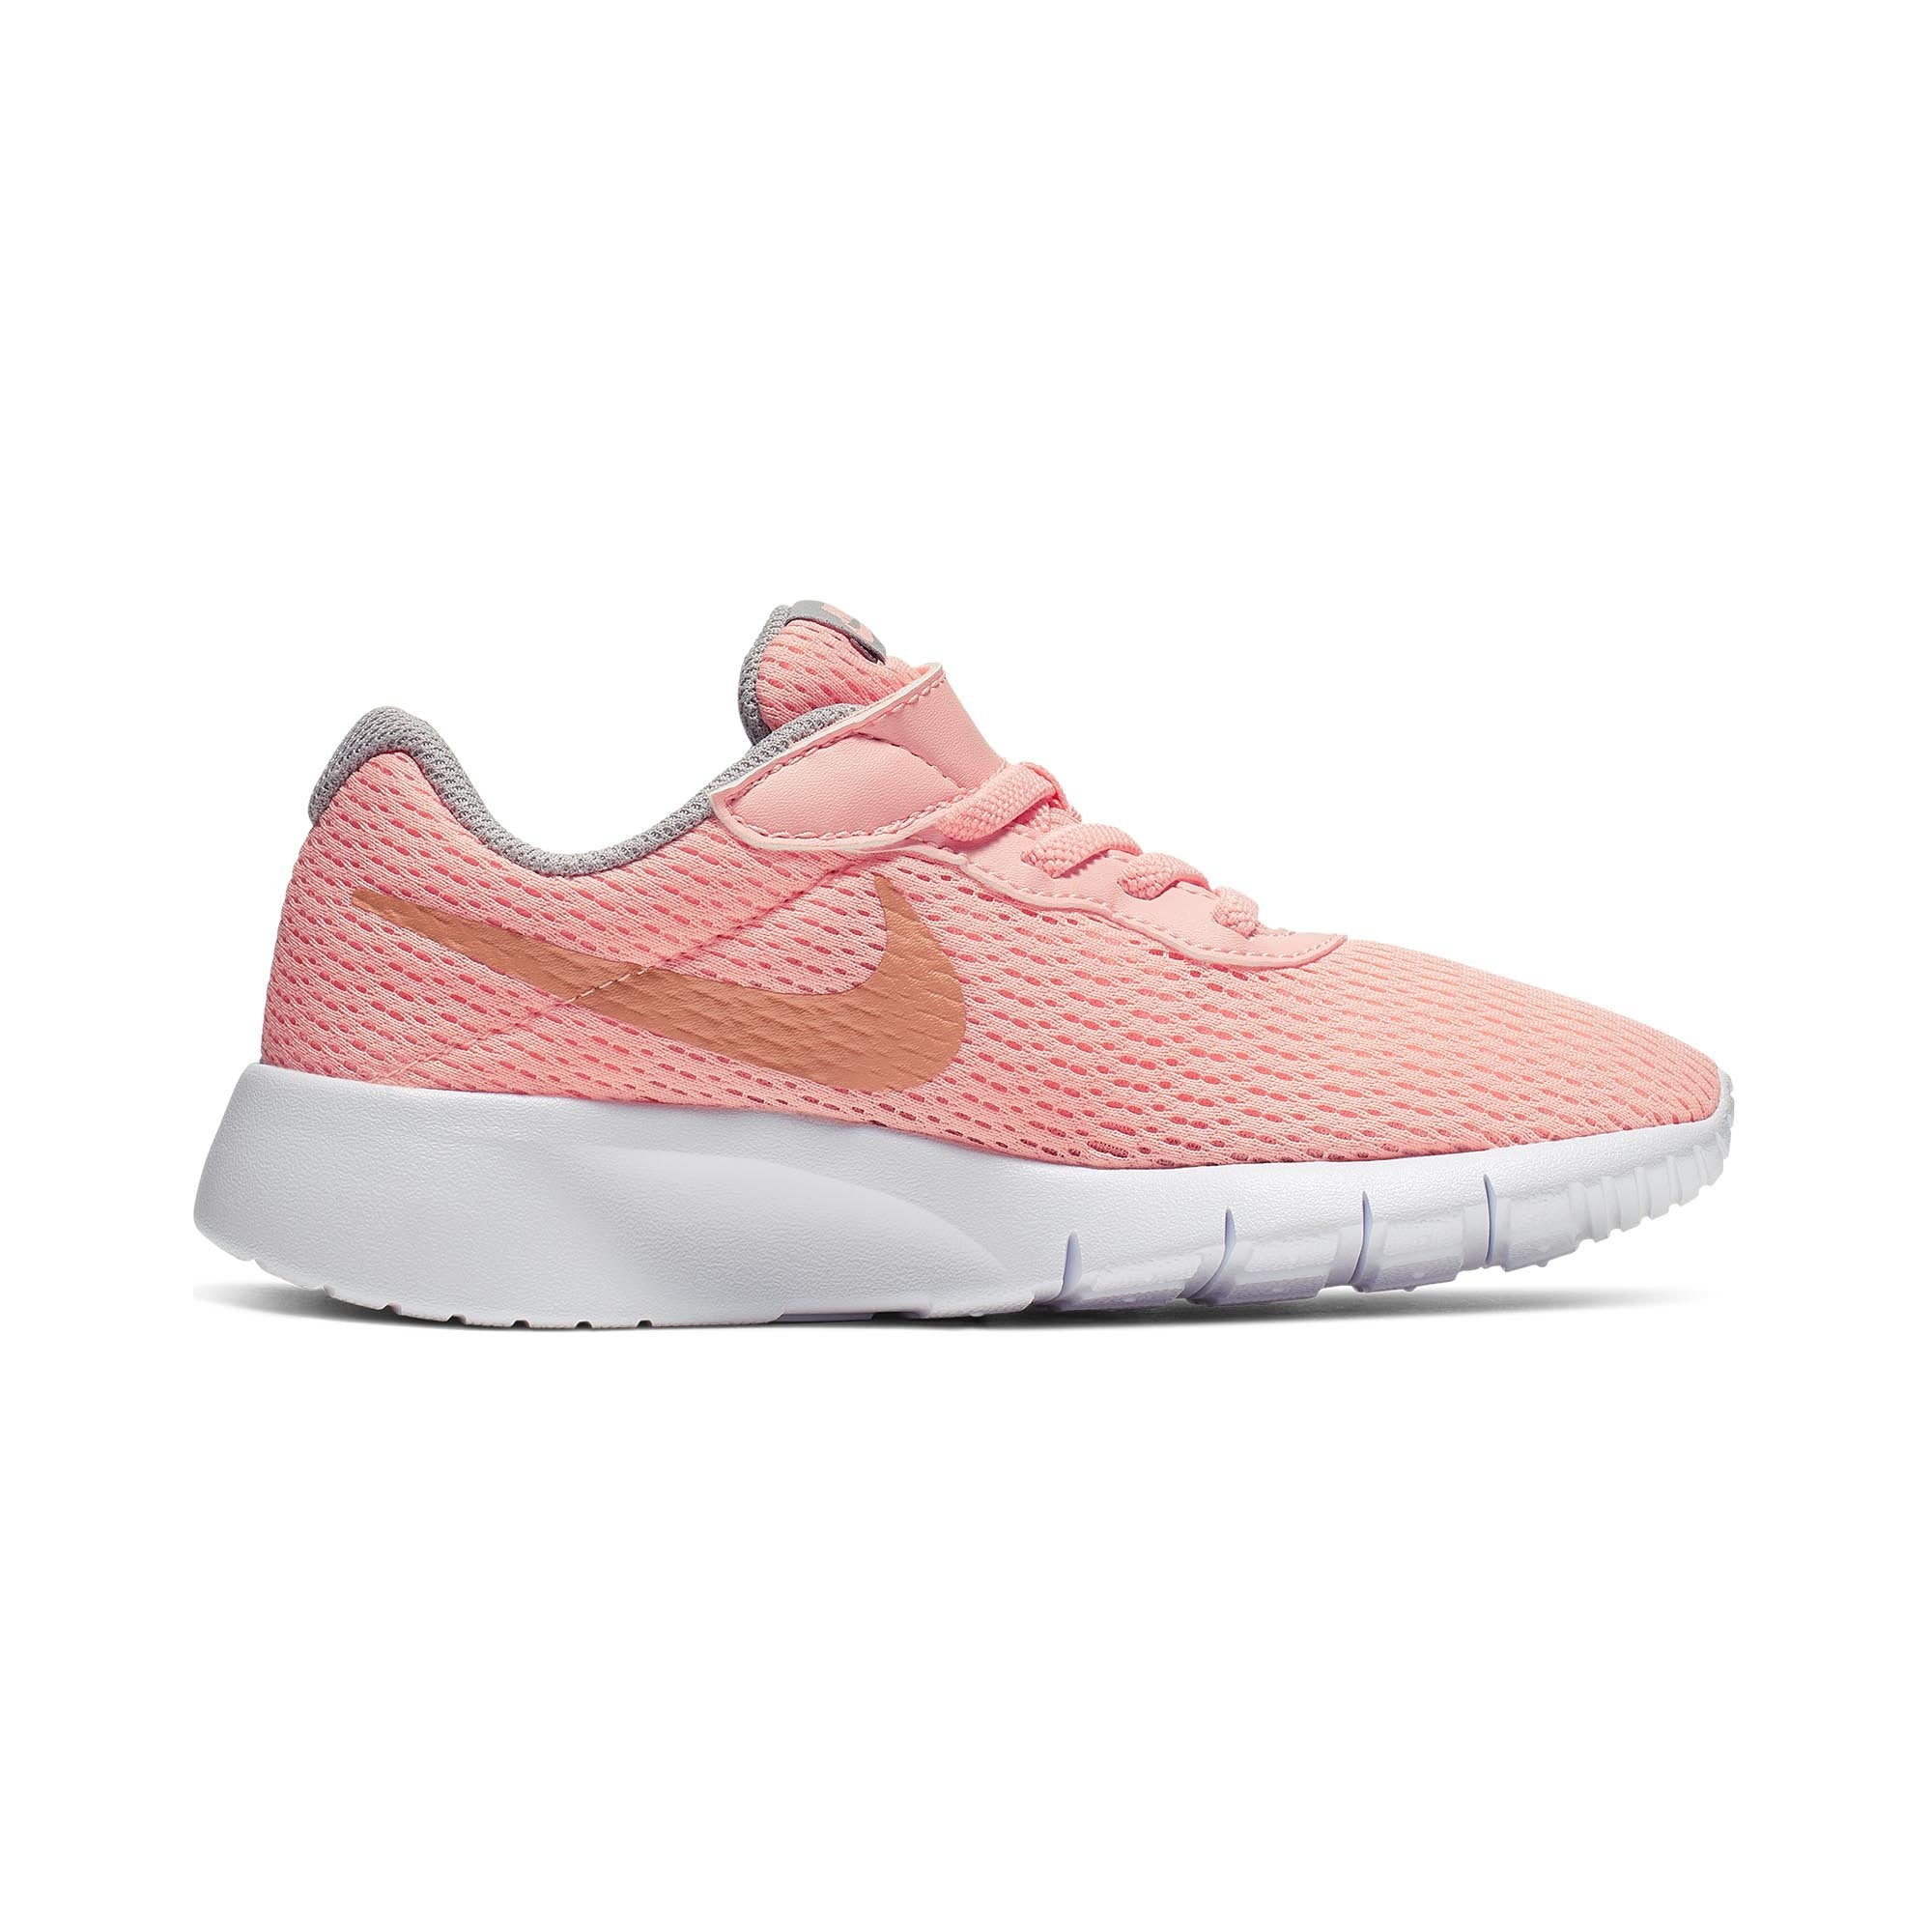 style mody nowy autentyczny taniej Buy Nike Girls Tanjun Pre-School Lifestyle Sneakers Online in Singapore |  Royal Sporting House